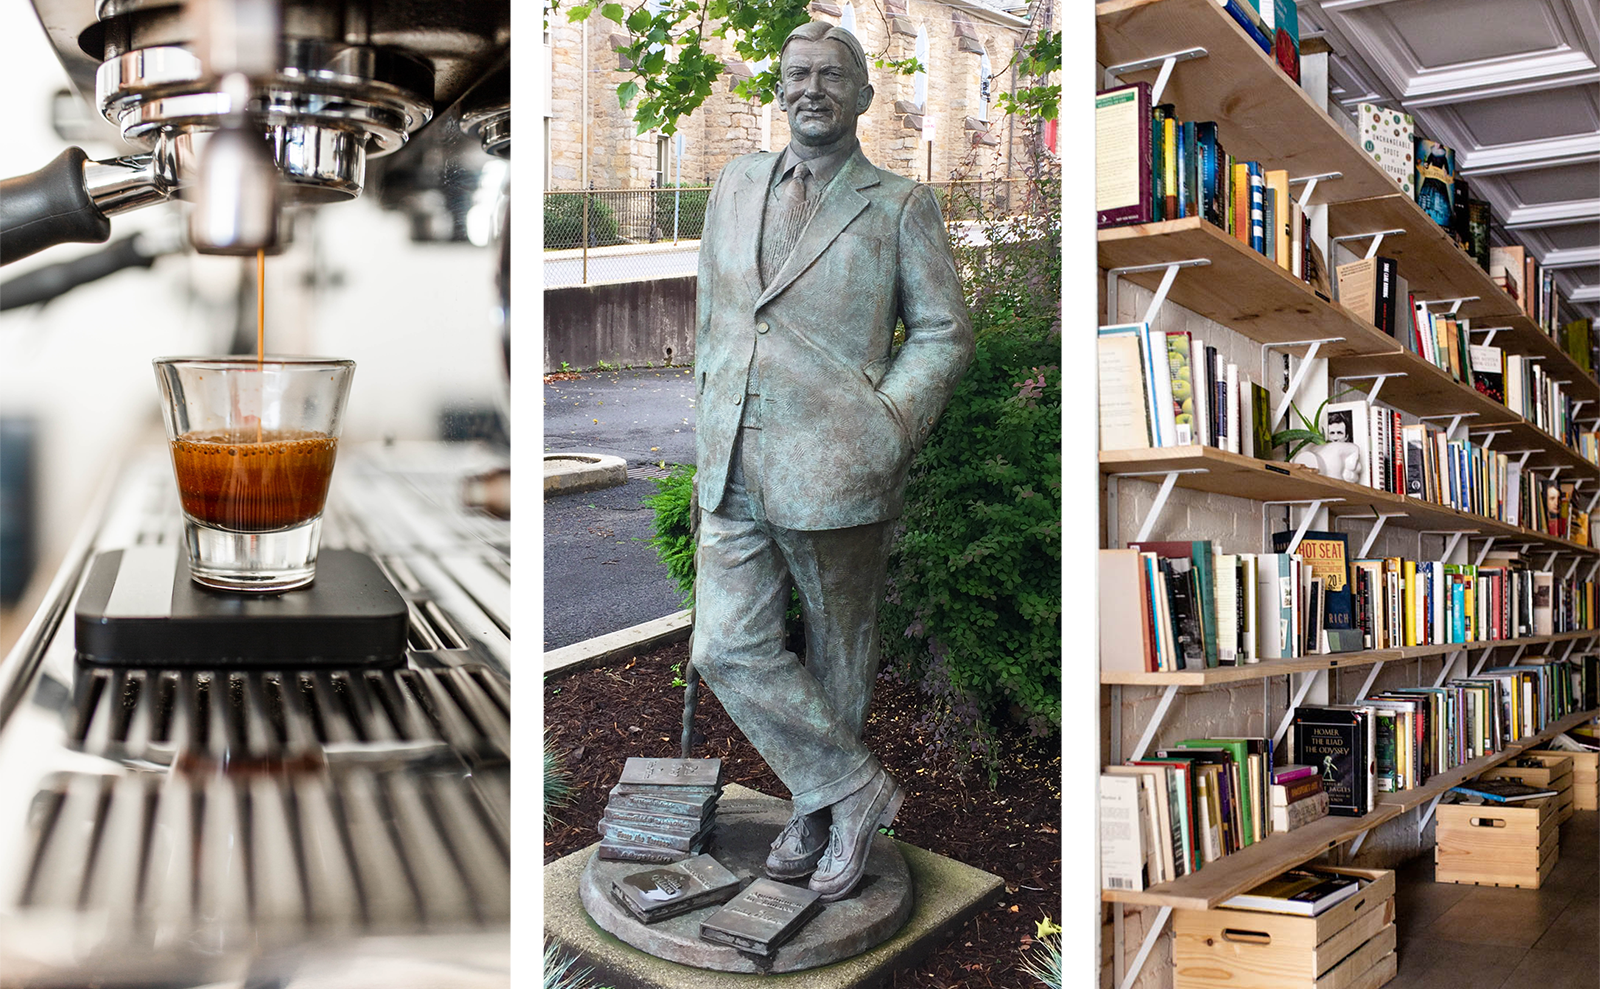 collage of a cup of espresso, a statue of john o'hara, and a shelf of books